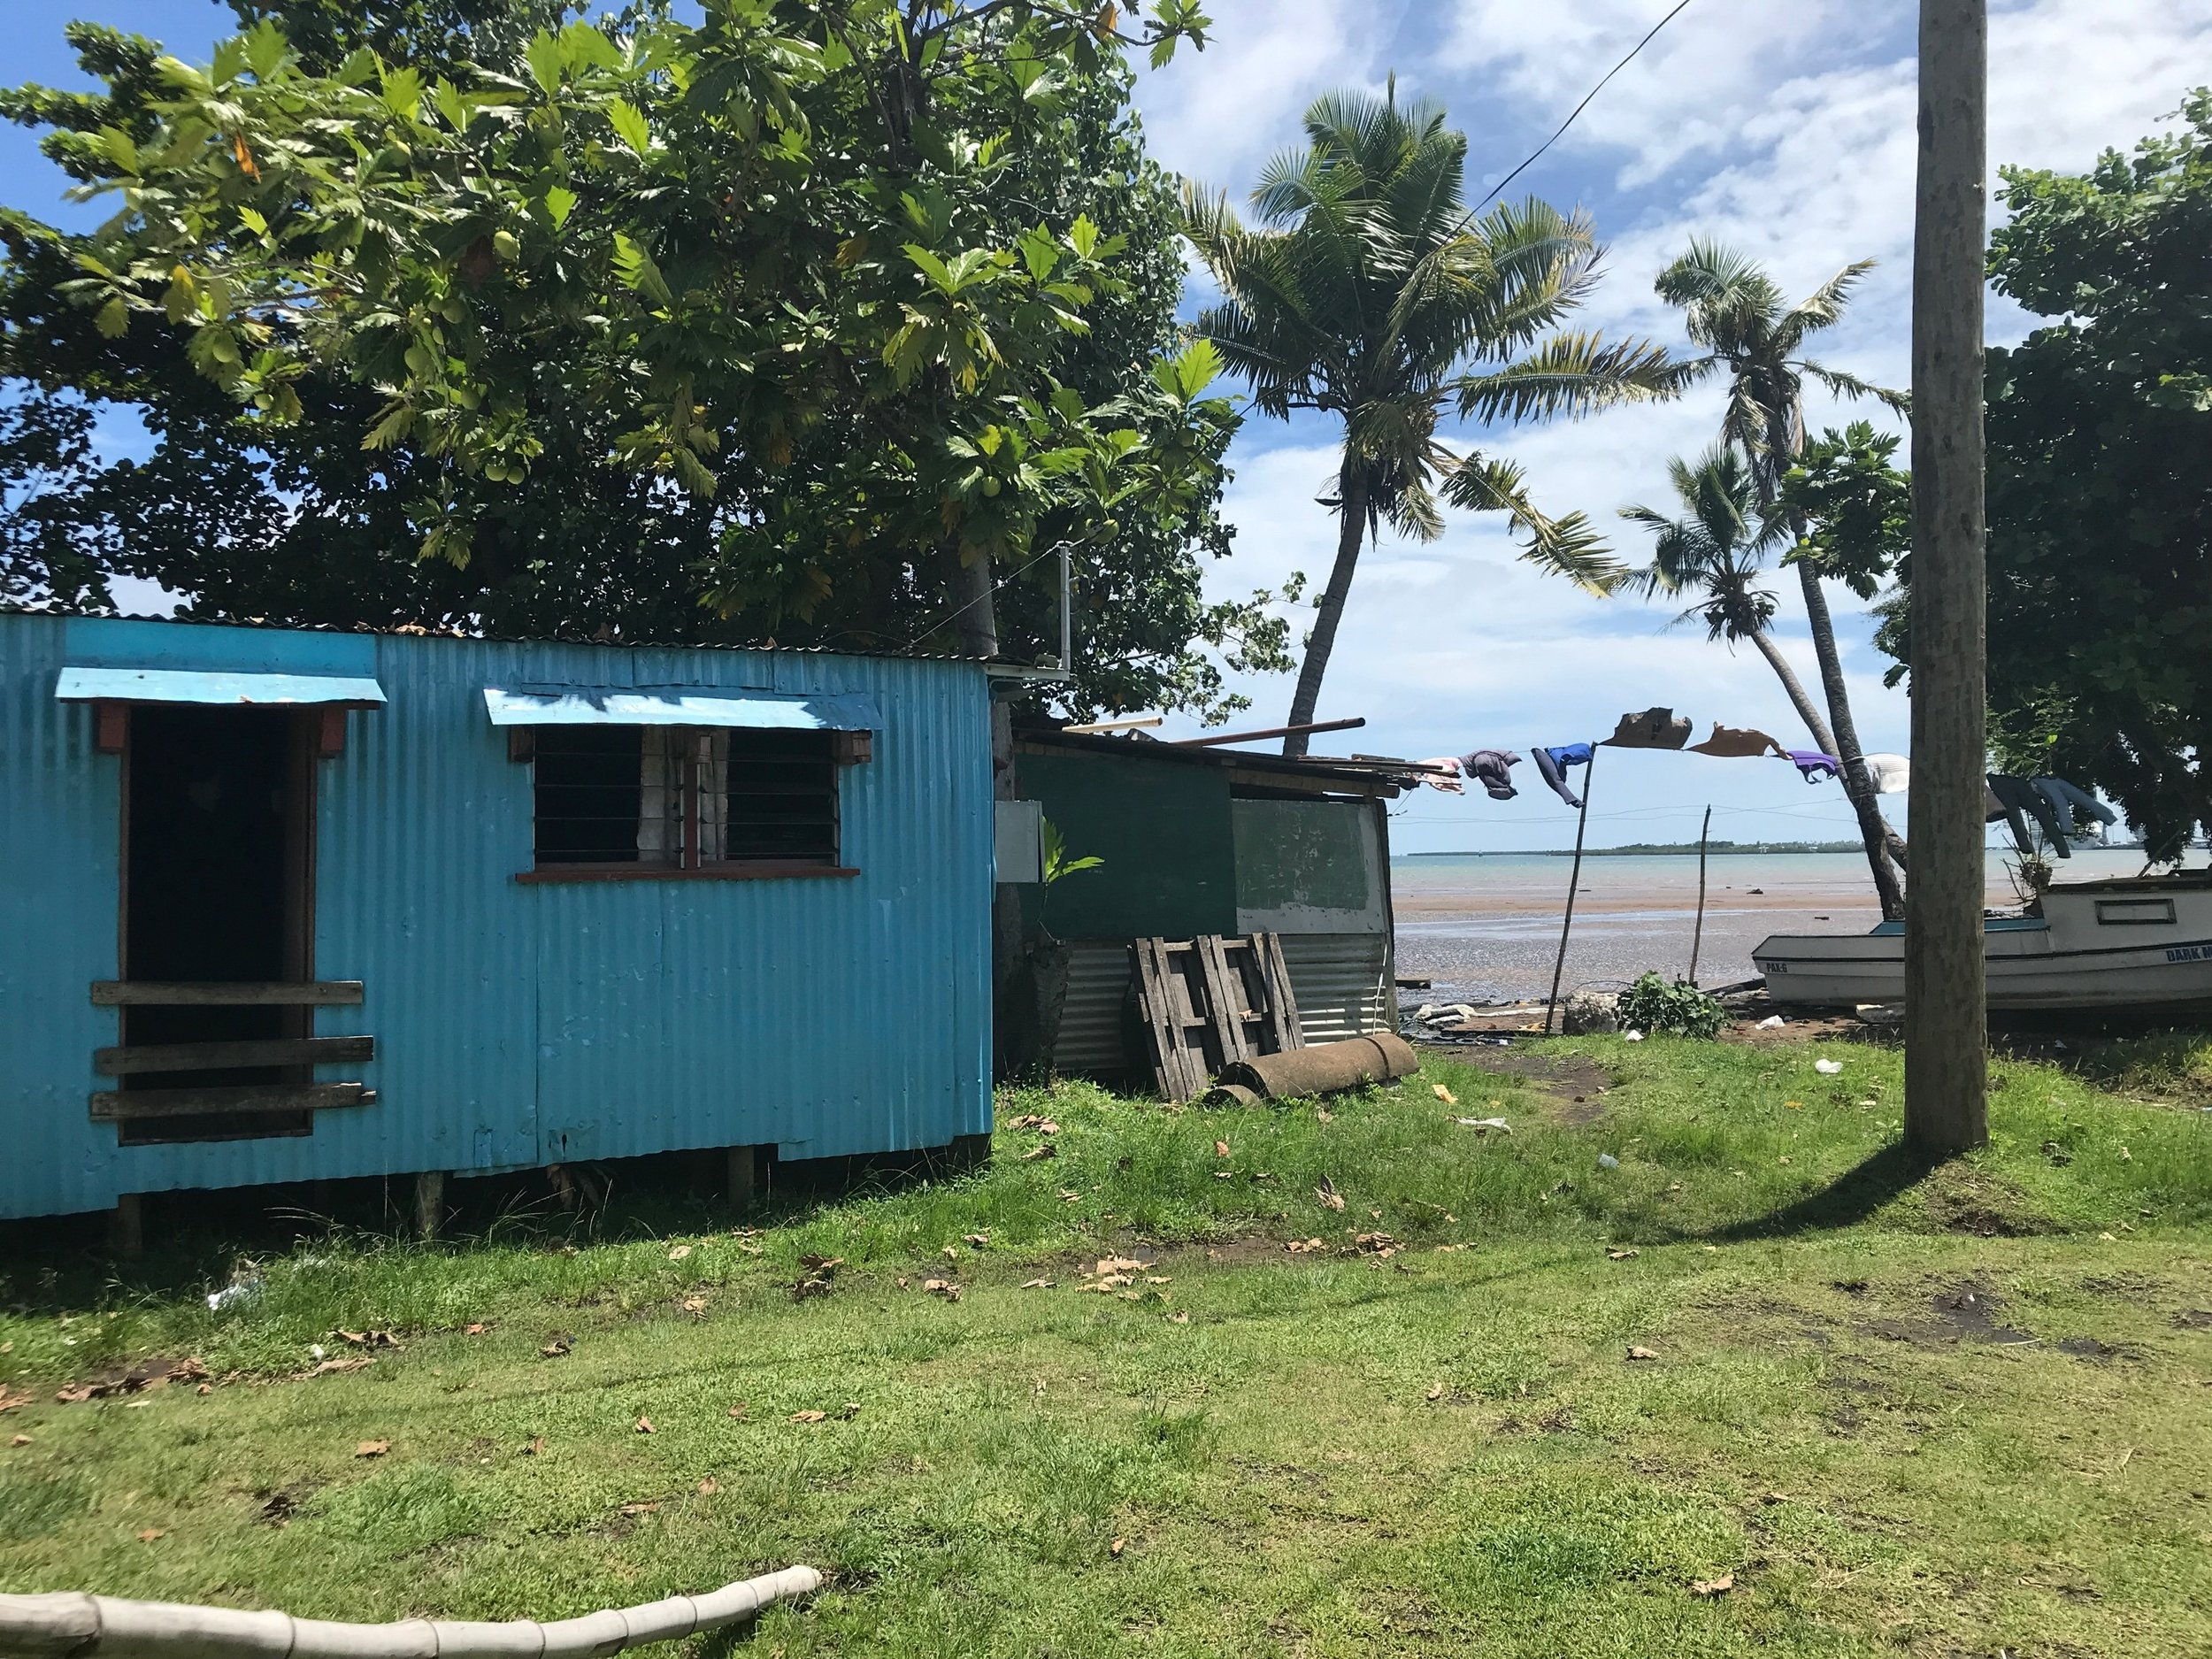 Two homes in the informal settlement community, located on the shore of Fiji's Western coast. Photo By Yanik Rozon